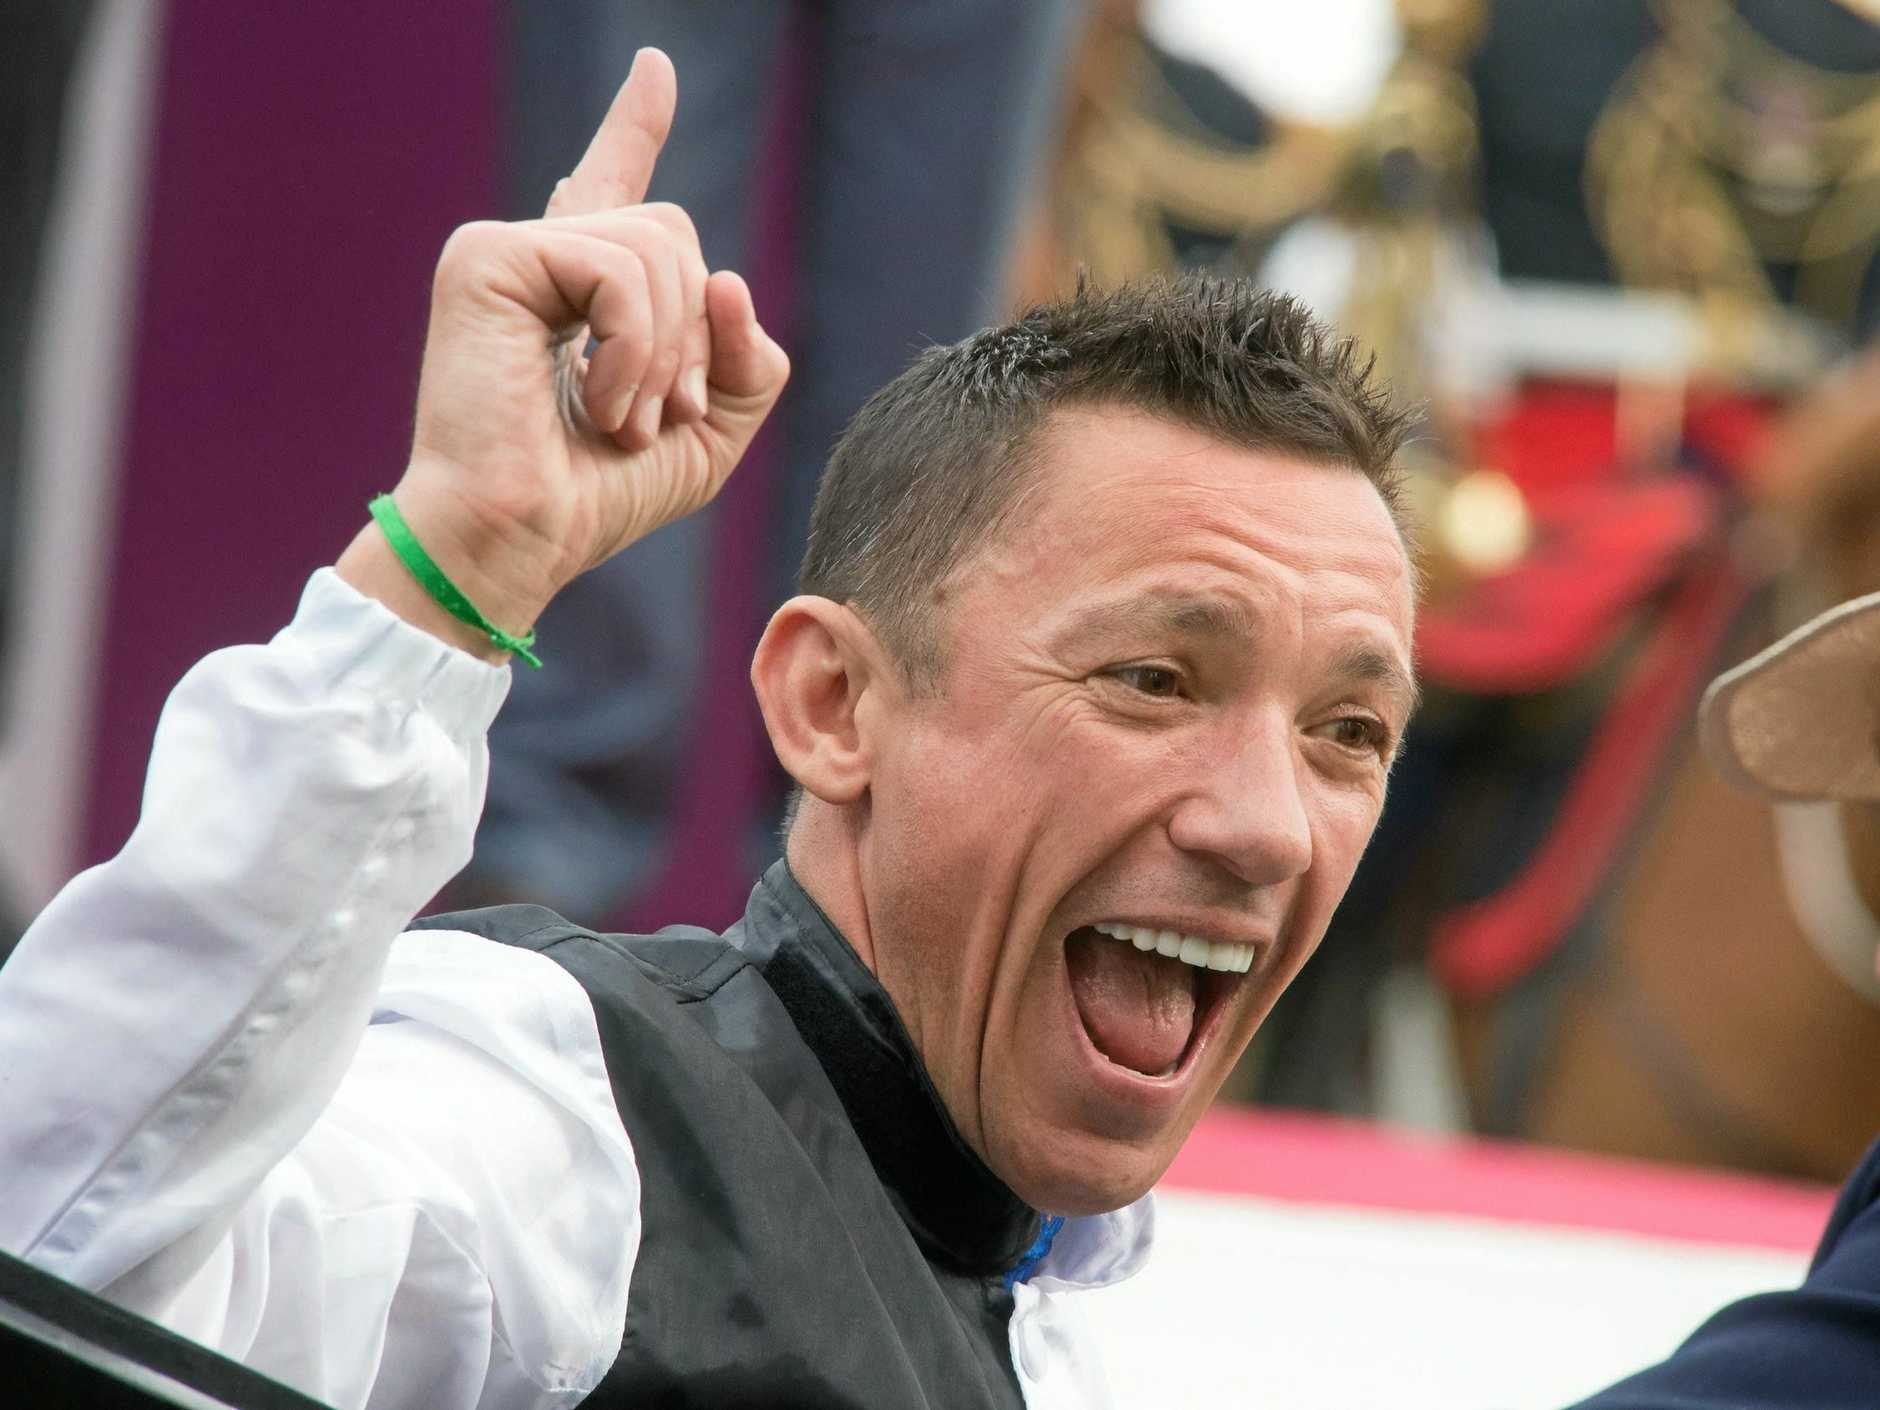 FRANCE, Paris: Italian jockey Lanfranco Dettori riding Golden Horn horse celebrates his victory at 94th Qatar Prix de l'Arc de Triomphe equestrian race held at Longchamp racecourse in Paris, on October 4, 2015. (AAP Image/NEWZULU/FRANCOIS PAULETTO). NO ARCHIVING, CROWD SOURCED CONTENT, EDITORIAL USE ONLY